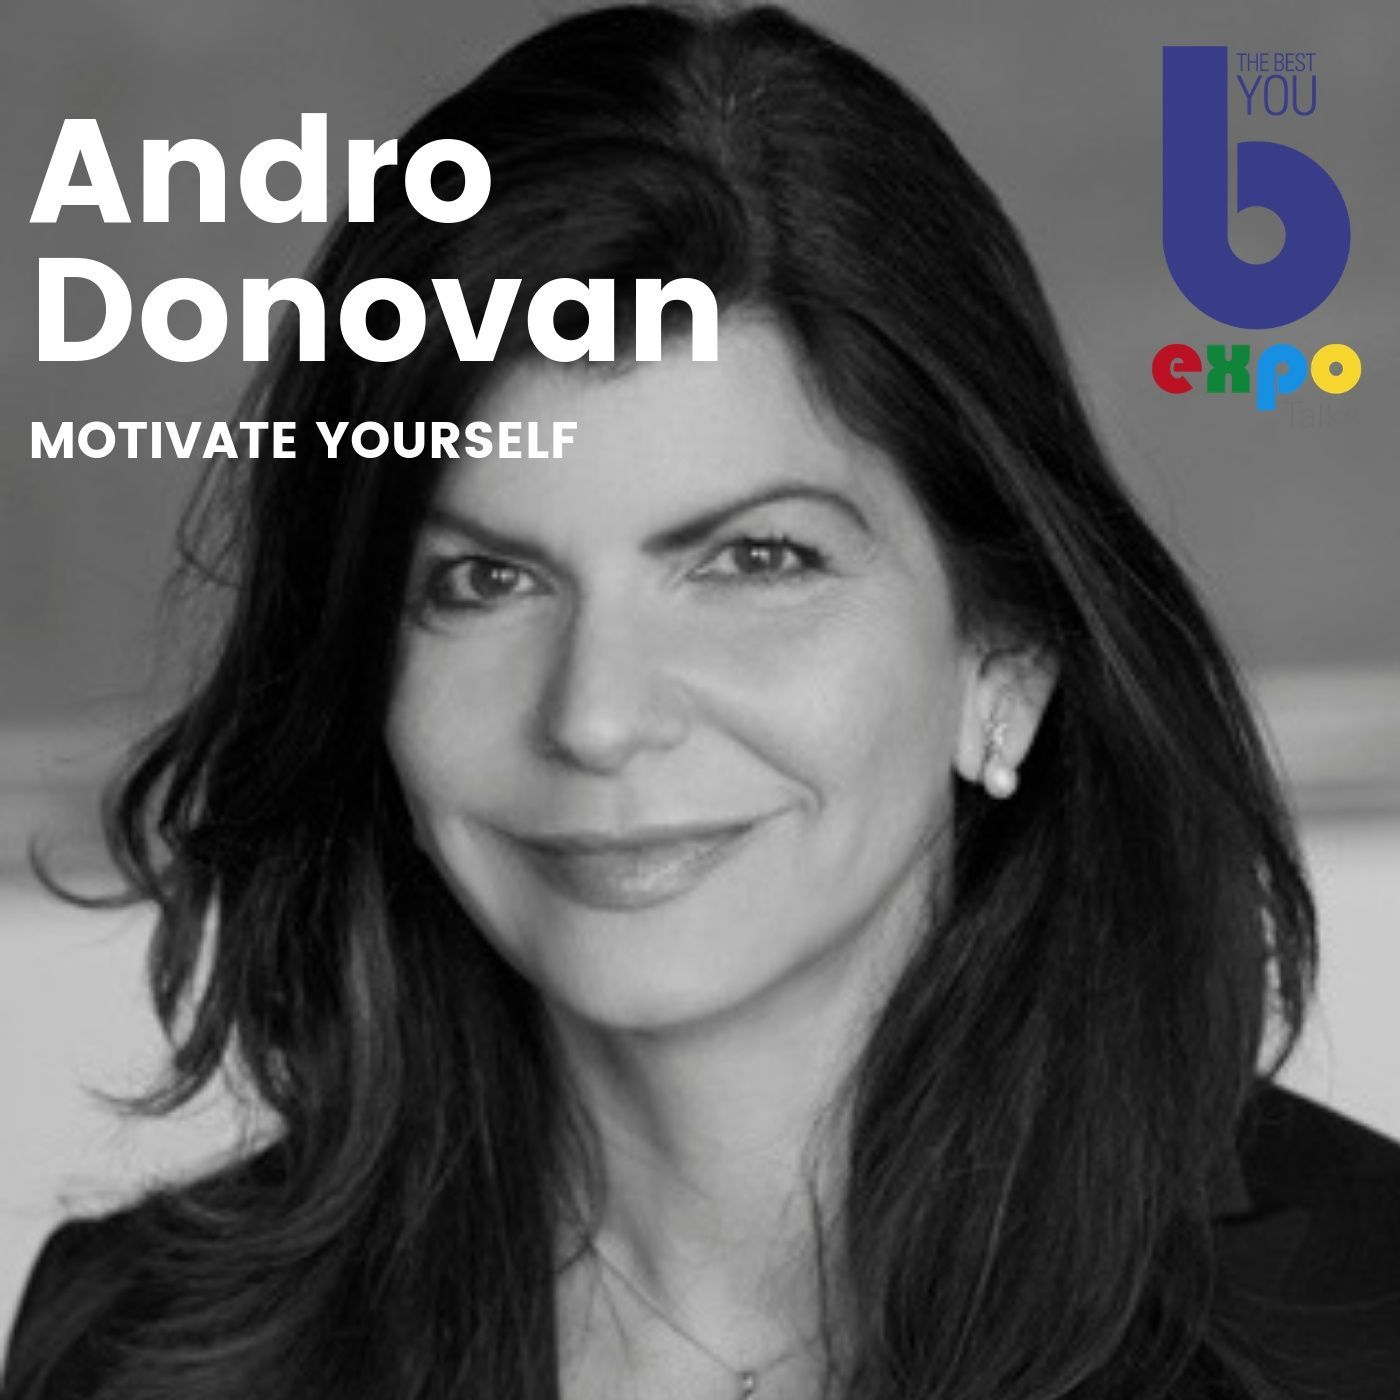 Listen to Andro Donovan at The Best You EXPO